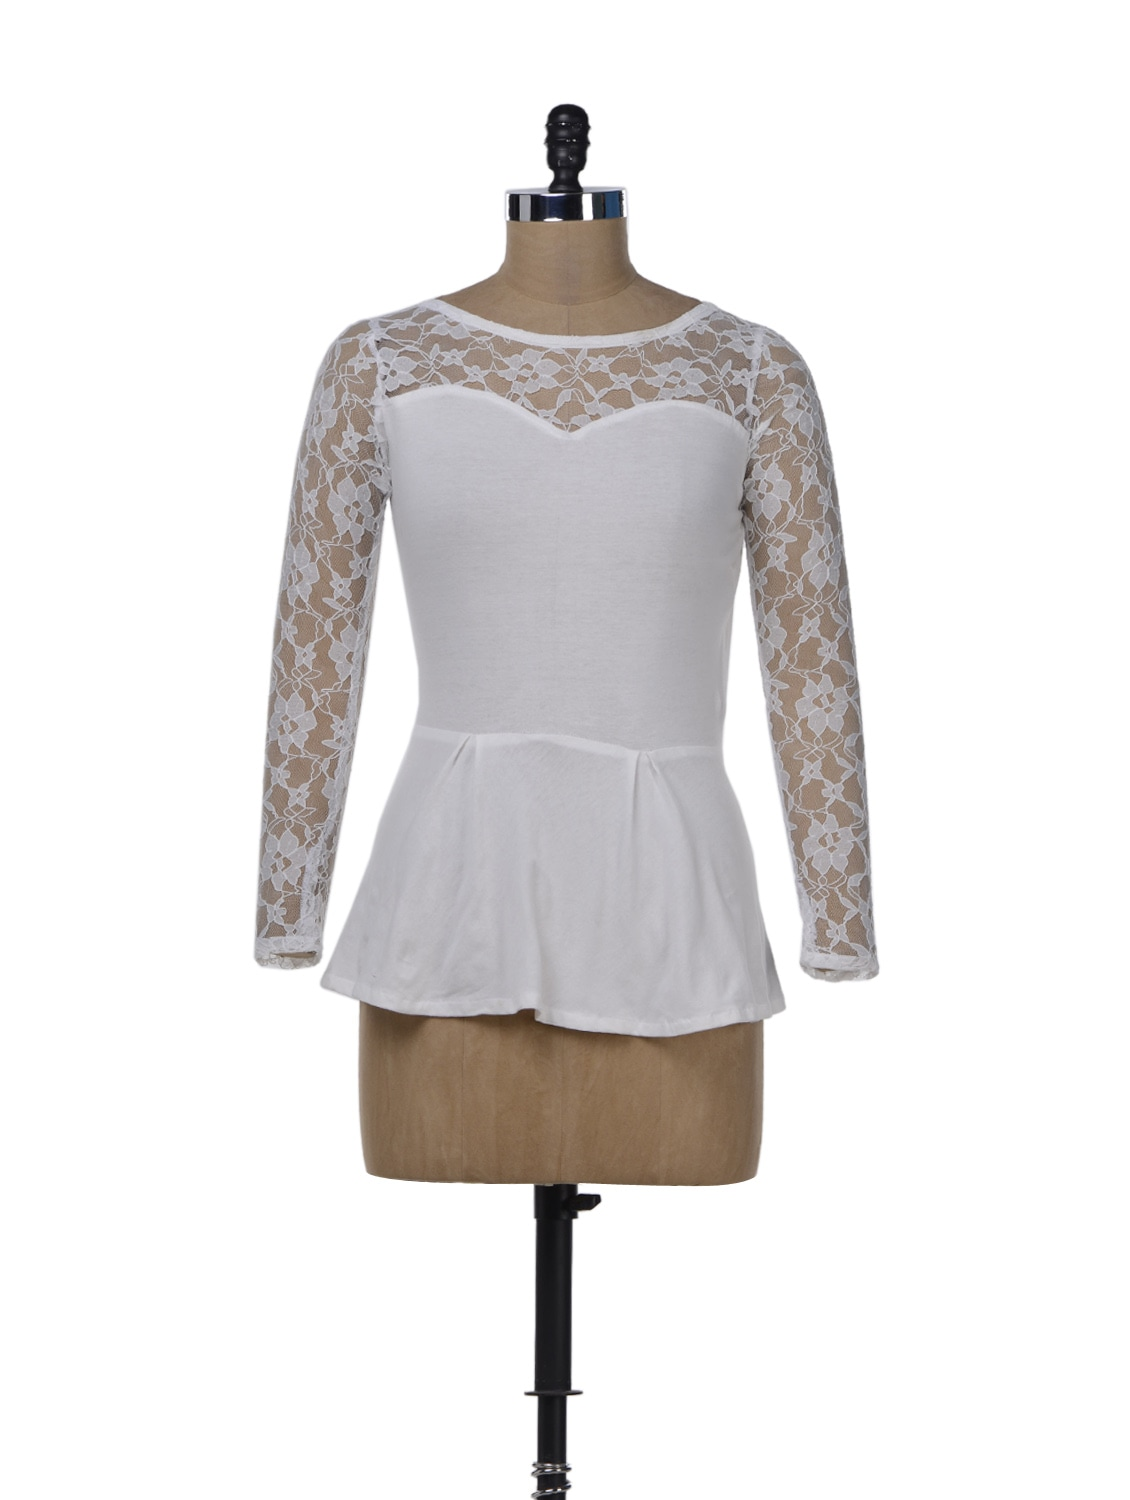 White Lace Party Peplum Top - Miss Chase